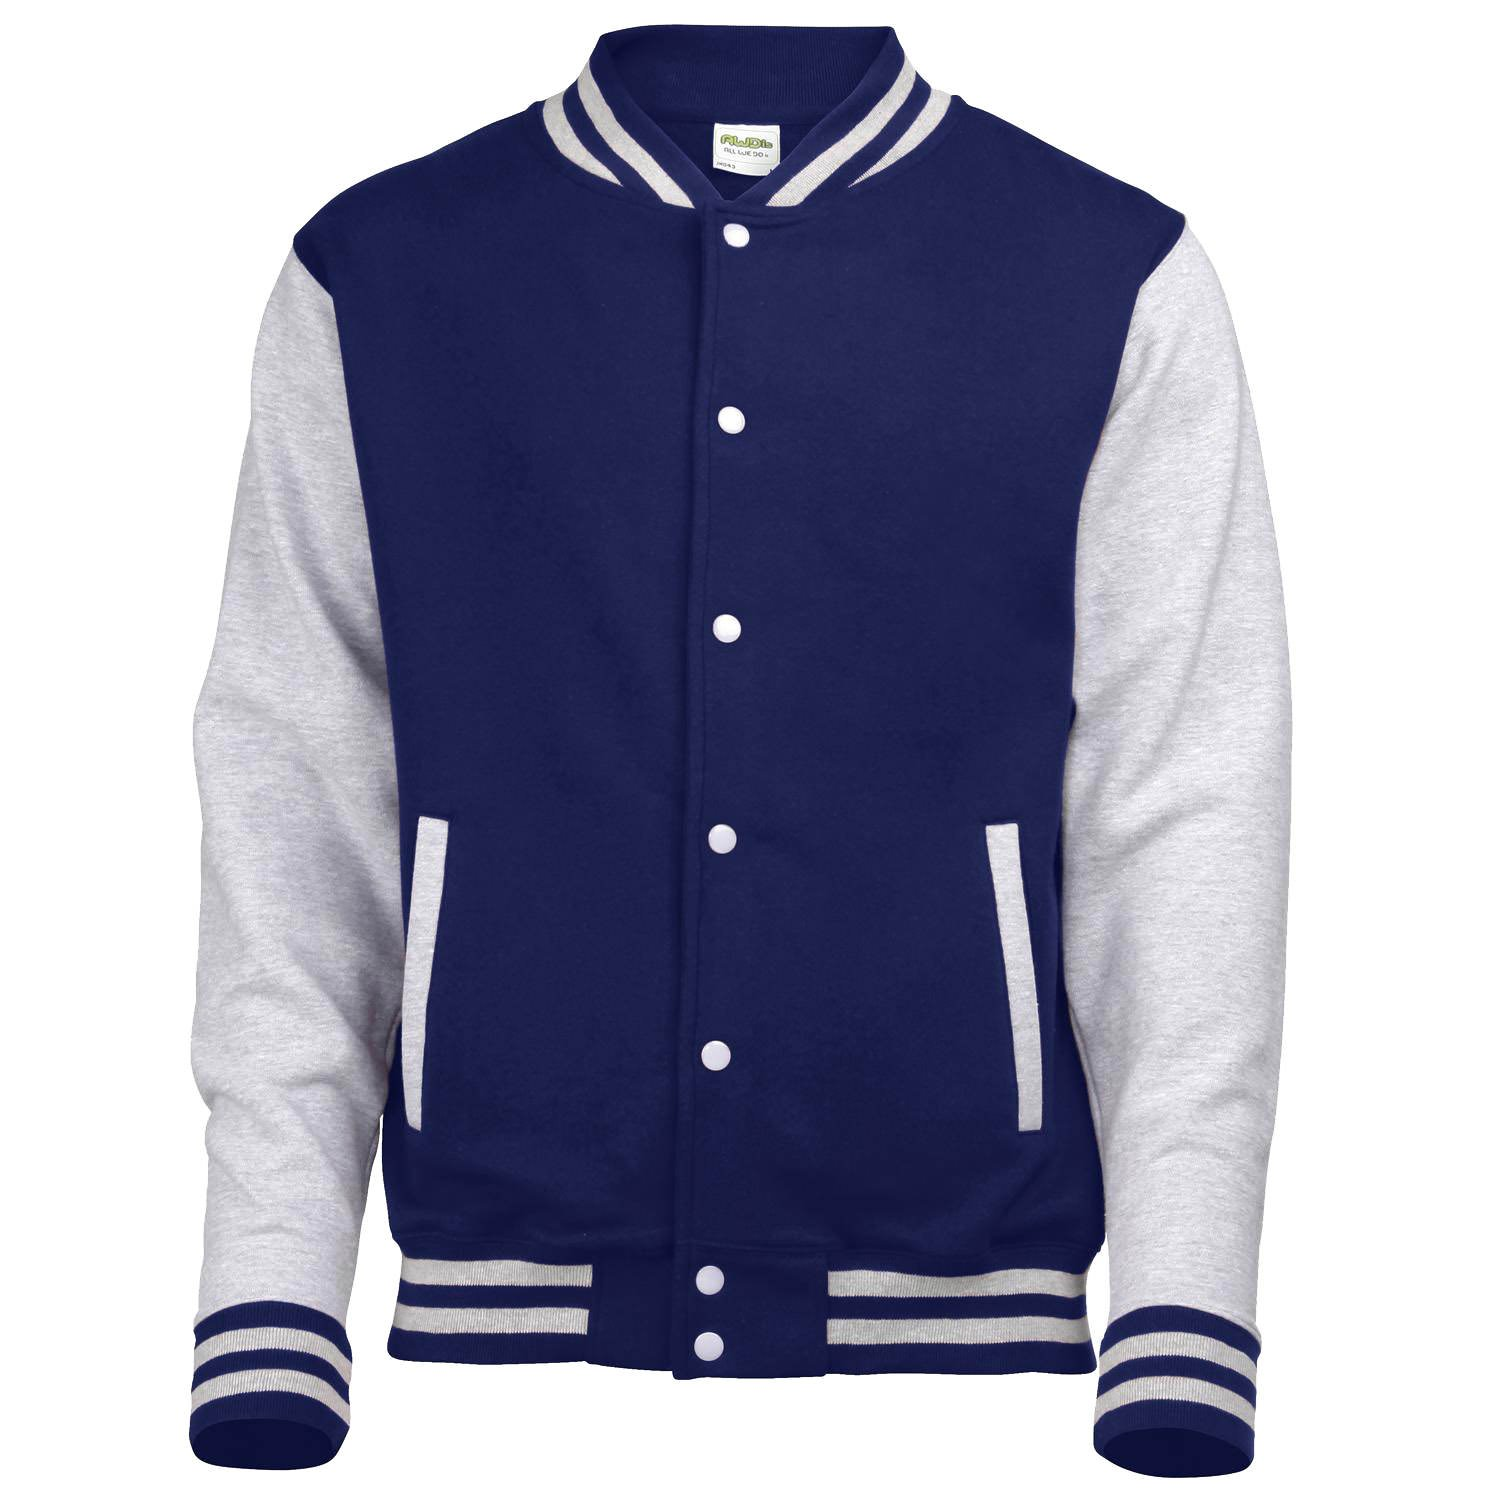 Awdis Varsity jacket - 16 Colours - Sizes XS to 2XL - Jet Black/Fire Red - L at Amazon Womens Clothing store: